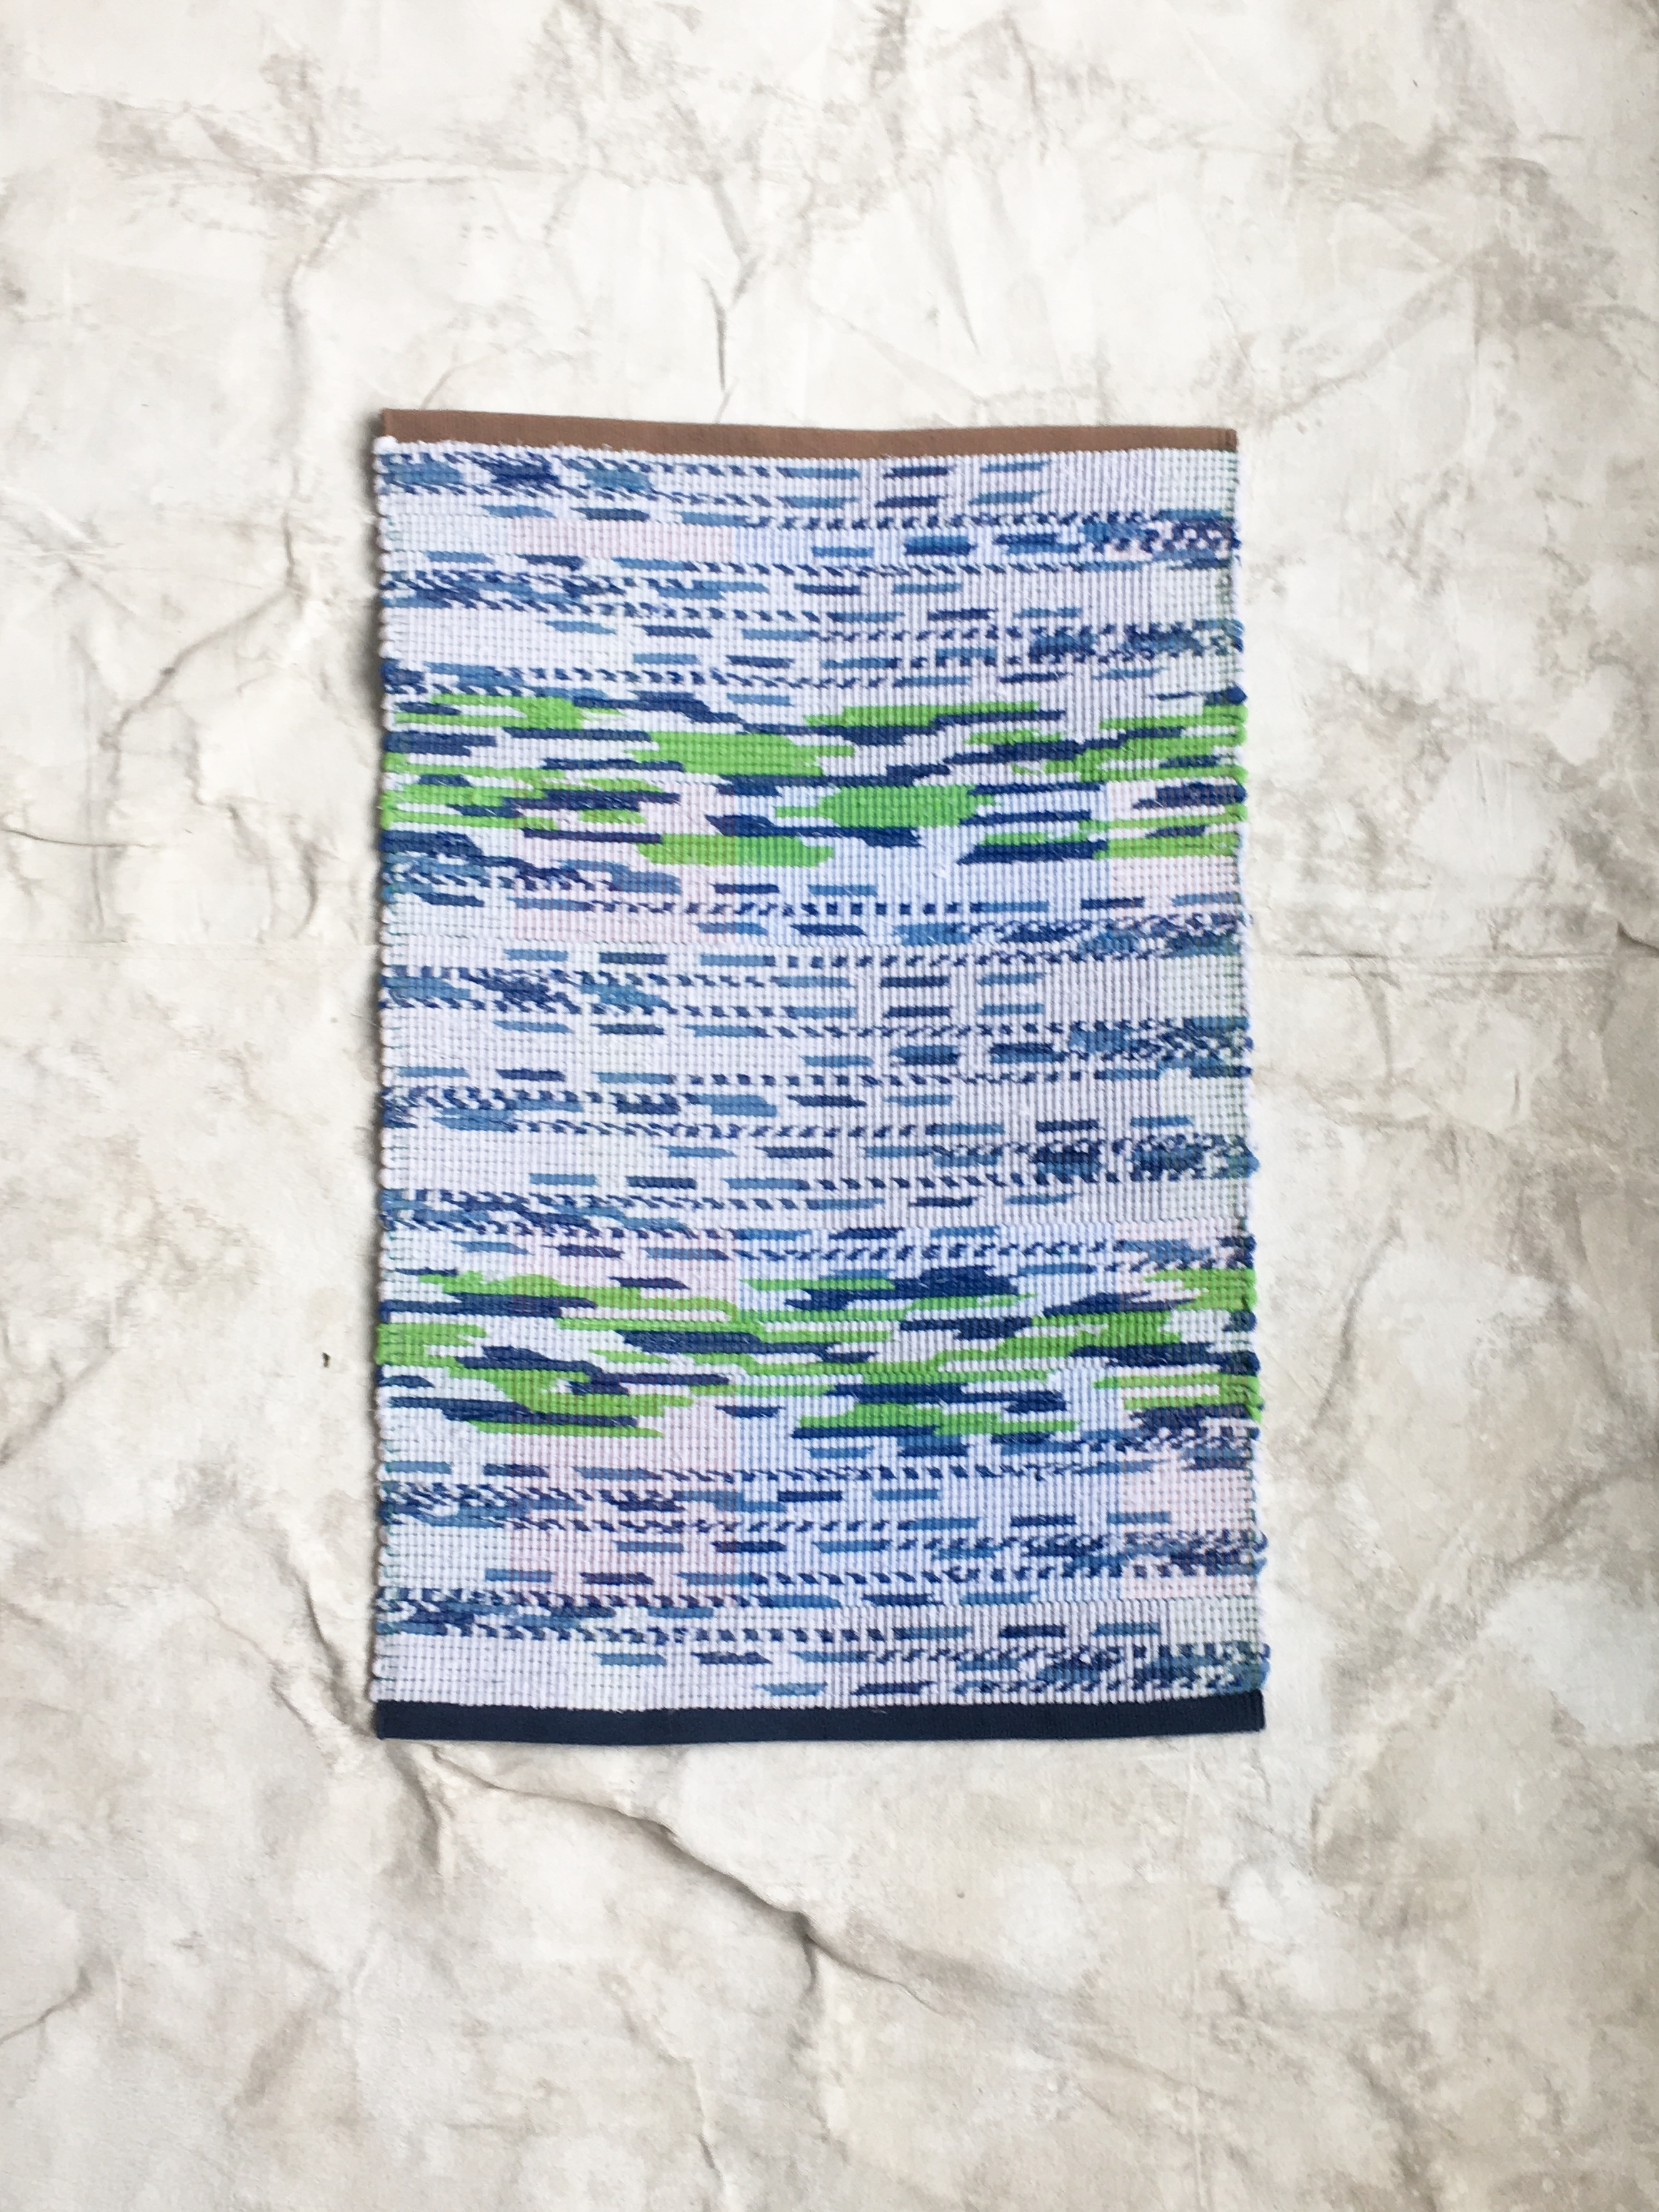 Claudia created a special series of rugs for us, using our Turkish towels.